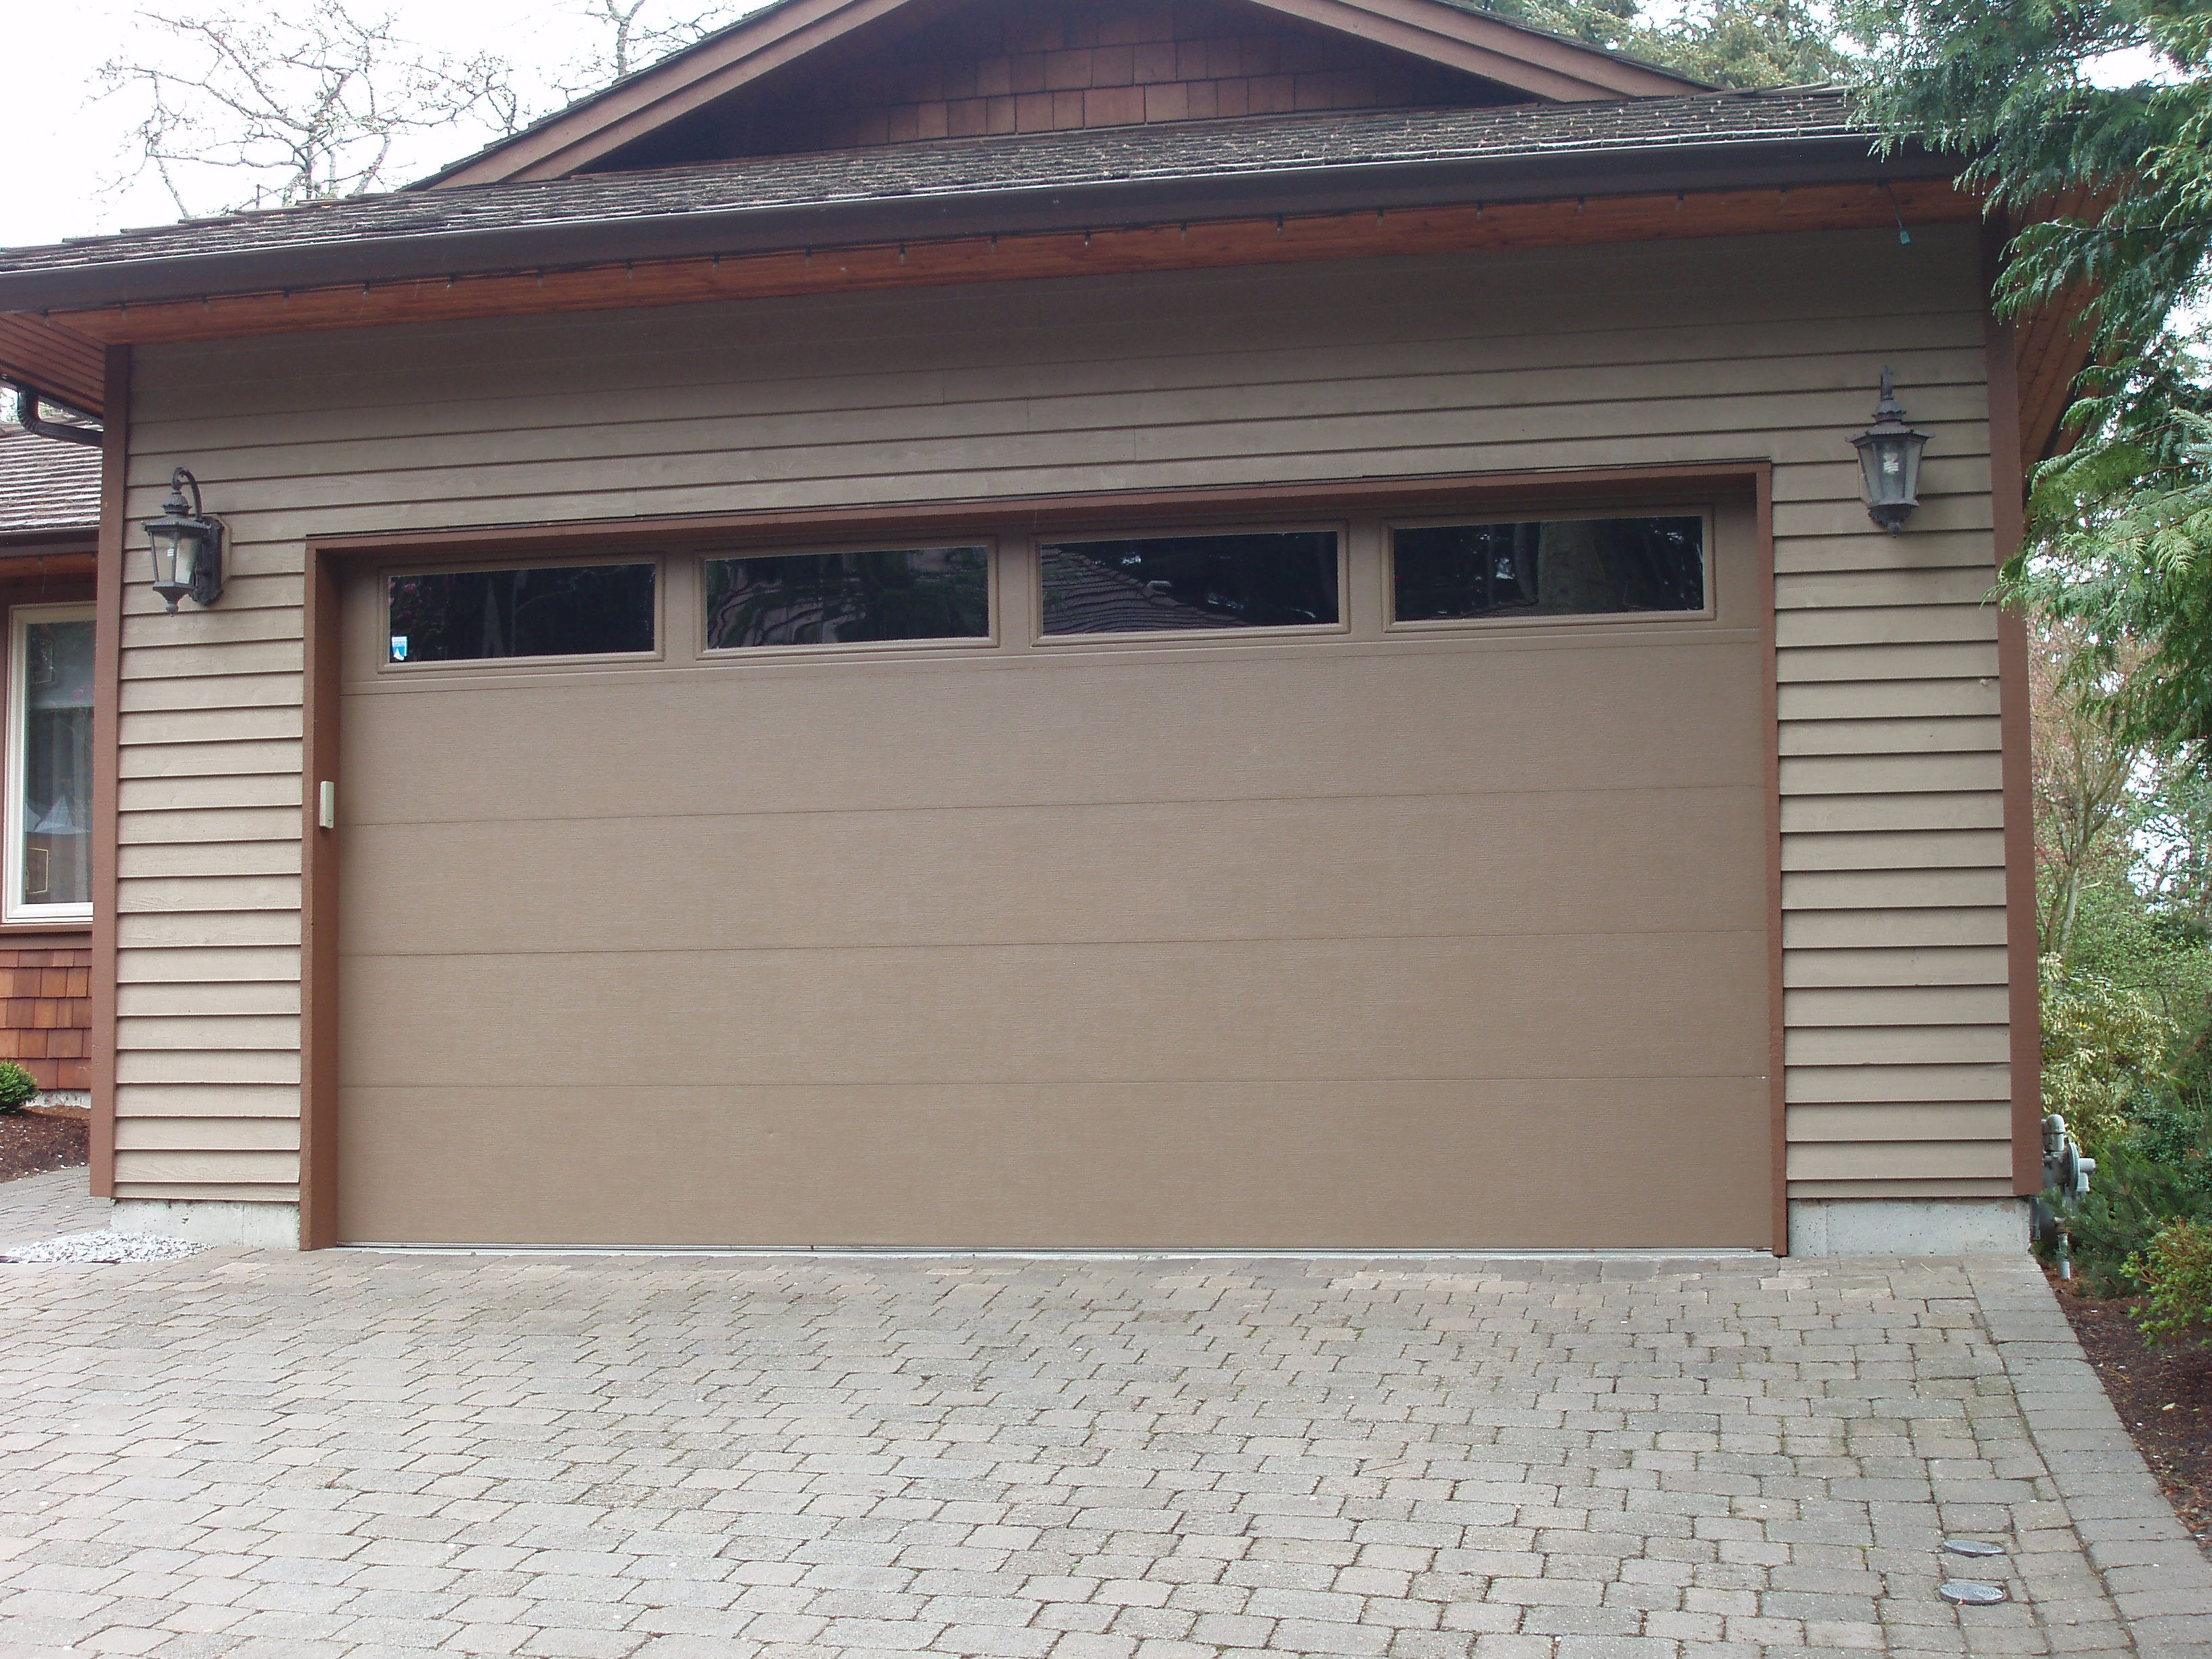 2448 #485F41 Garage Doors For Inspiring Garage Door Ideas: Exciting Exterior Garage  image Salt Lake City Garage Doors 36833264